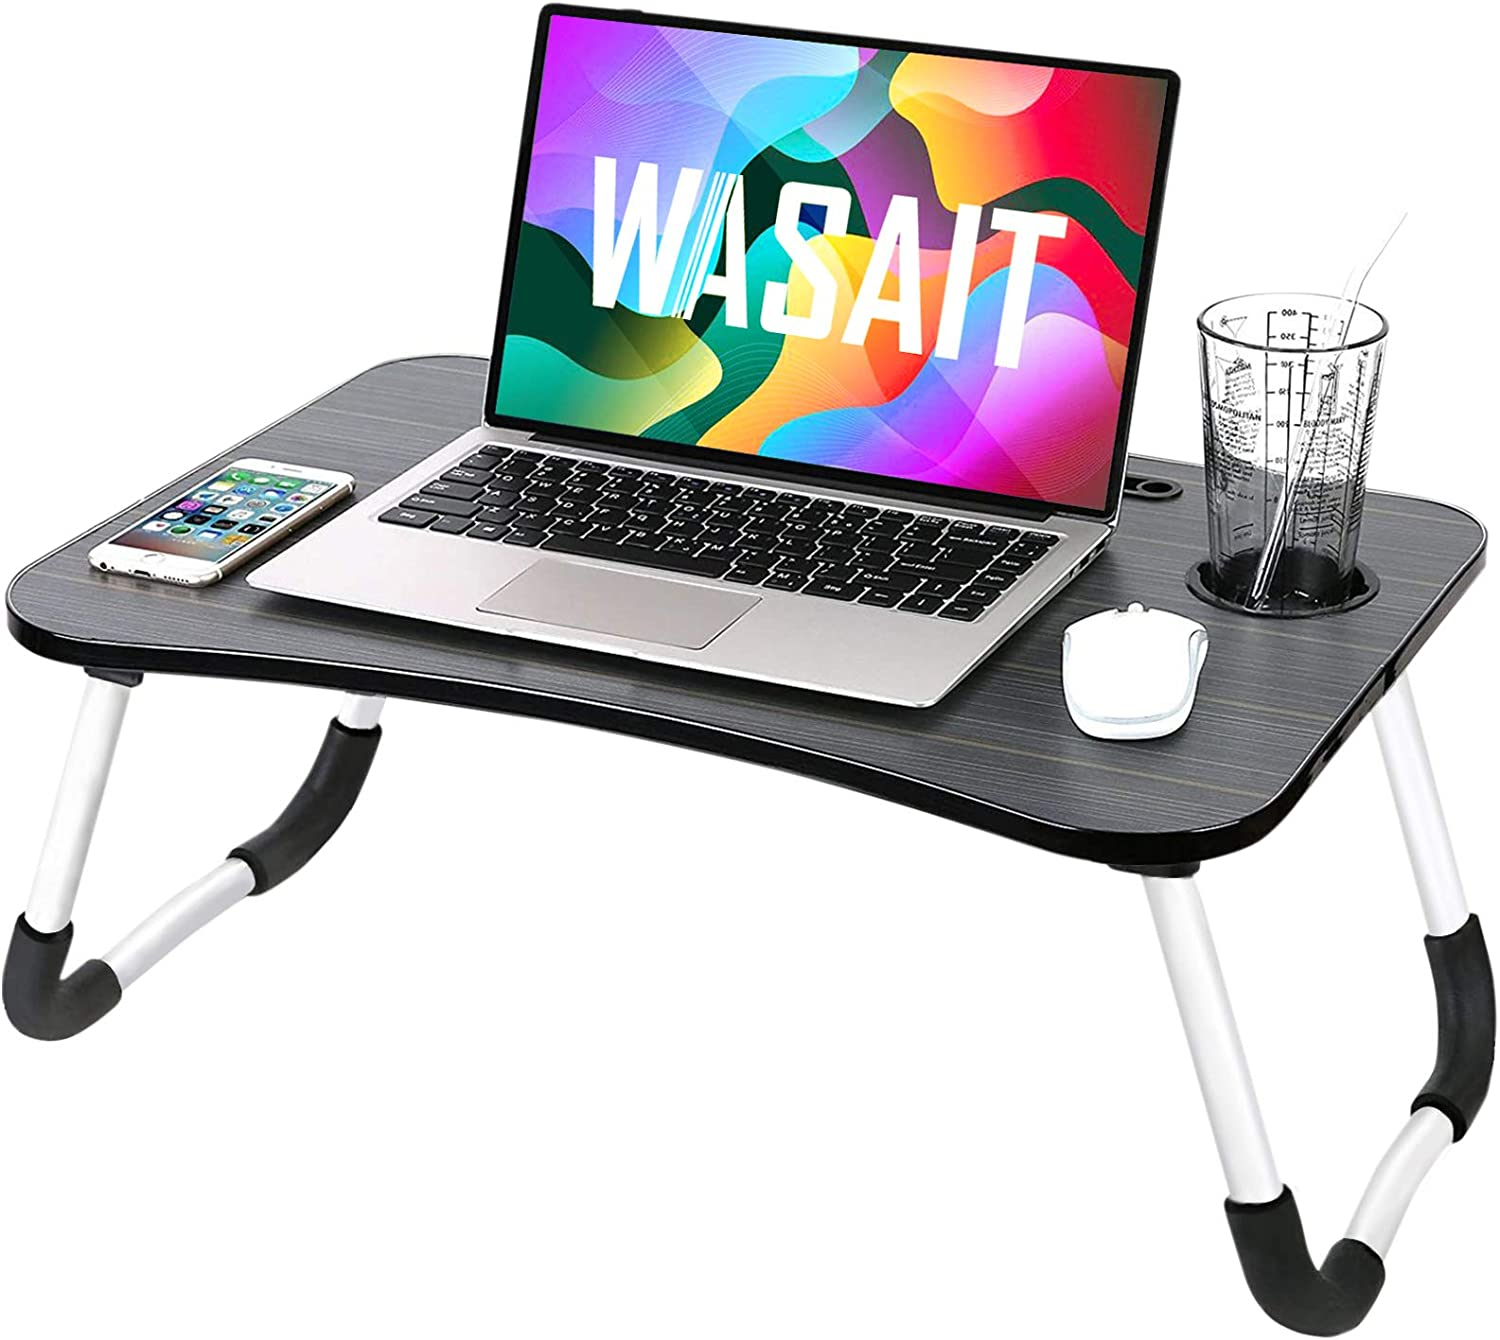 Folding Lap Desk Laptop Bed Table for Eating, Foldable Bed Tray Table Laptops Stand for Bed, Portable Laptop Workstation Desk Bed Tray with Antislip Legs, for Kids Couch Writing Reading, Black